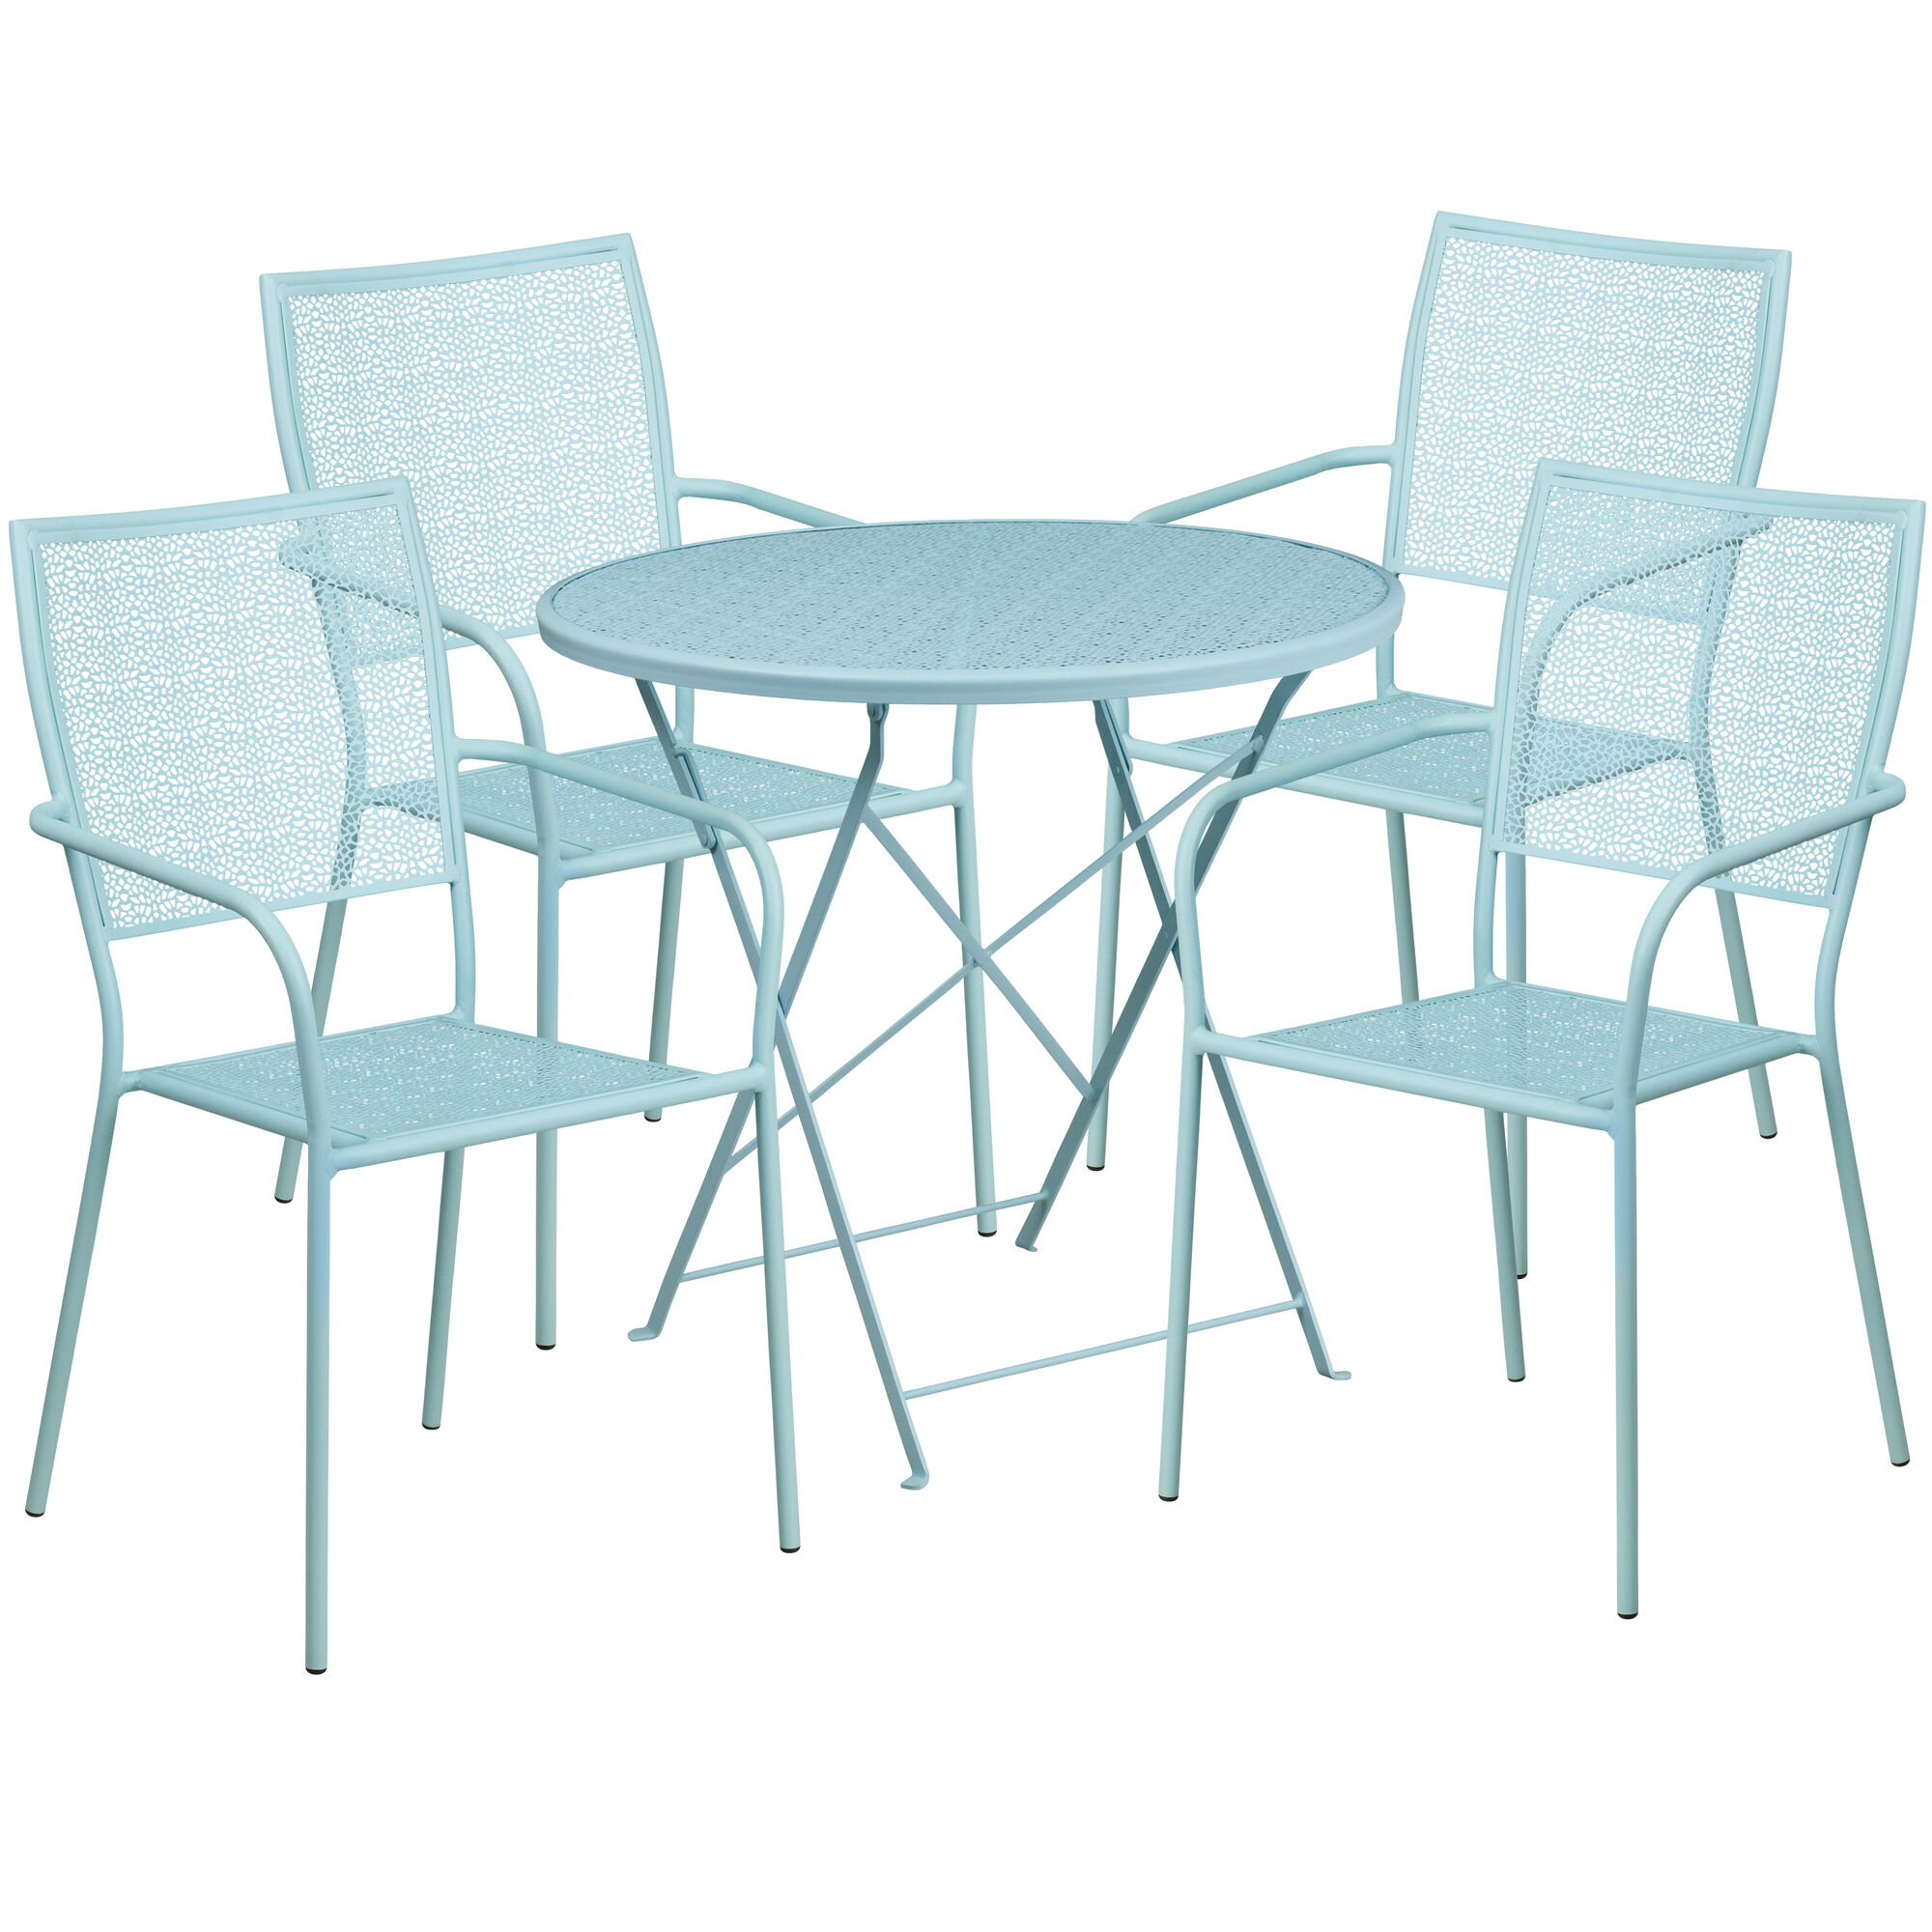 Admirable Commercial Grade 30 Round Sky Blue Indoor Outdoor Steel Folding Patio Table Set With 4 Square Back Chairs Bralicious Painted Fabric Chair Ideas Braliciousco